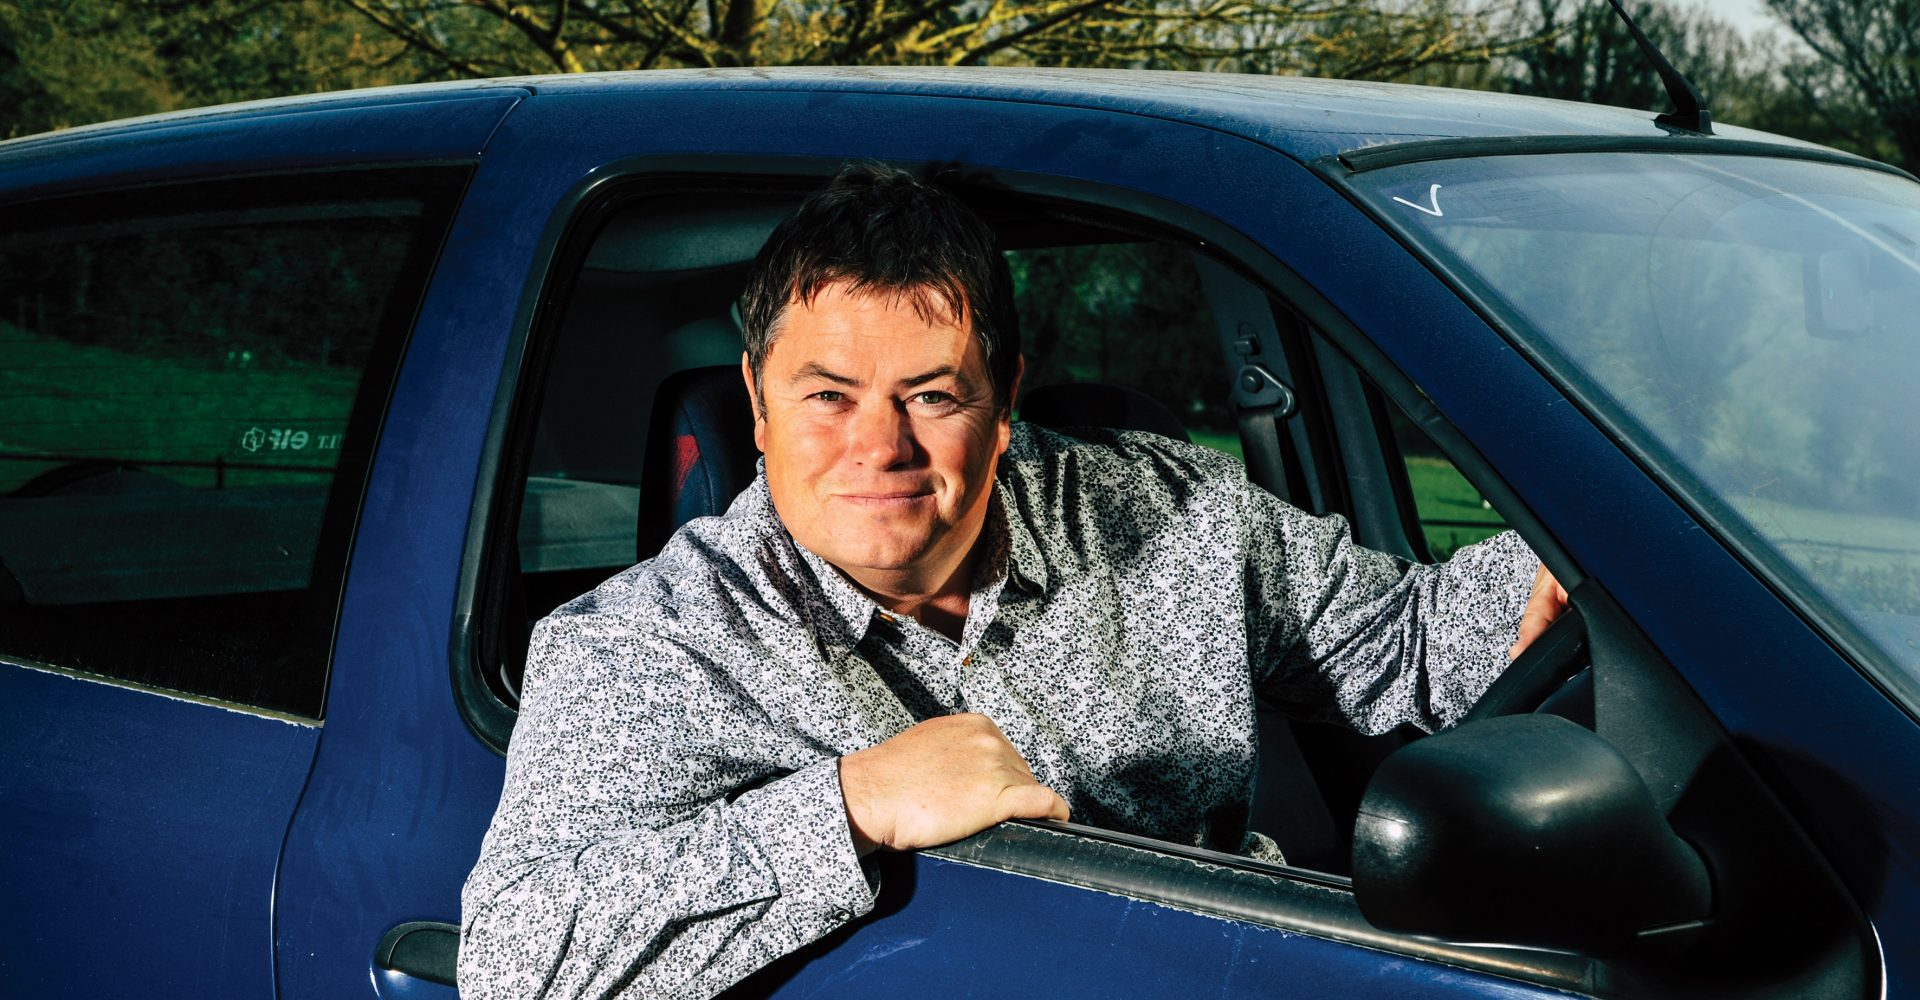 Classic car ownership is the 'ultimate in recycling' says TV's Mike Brewer